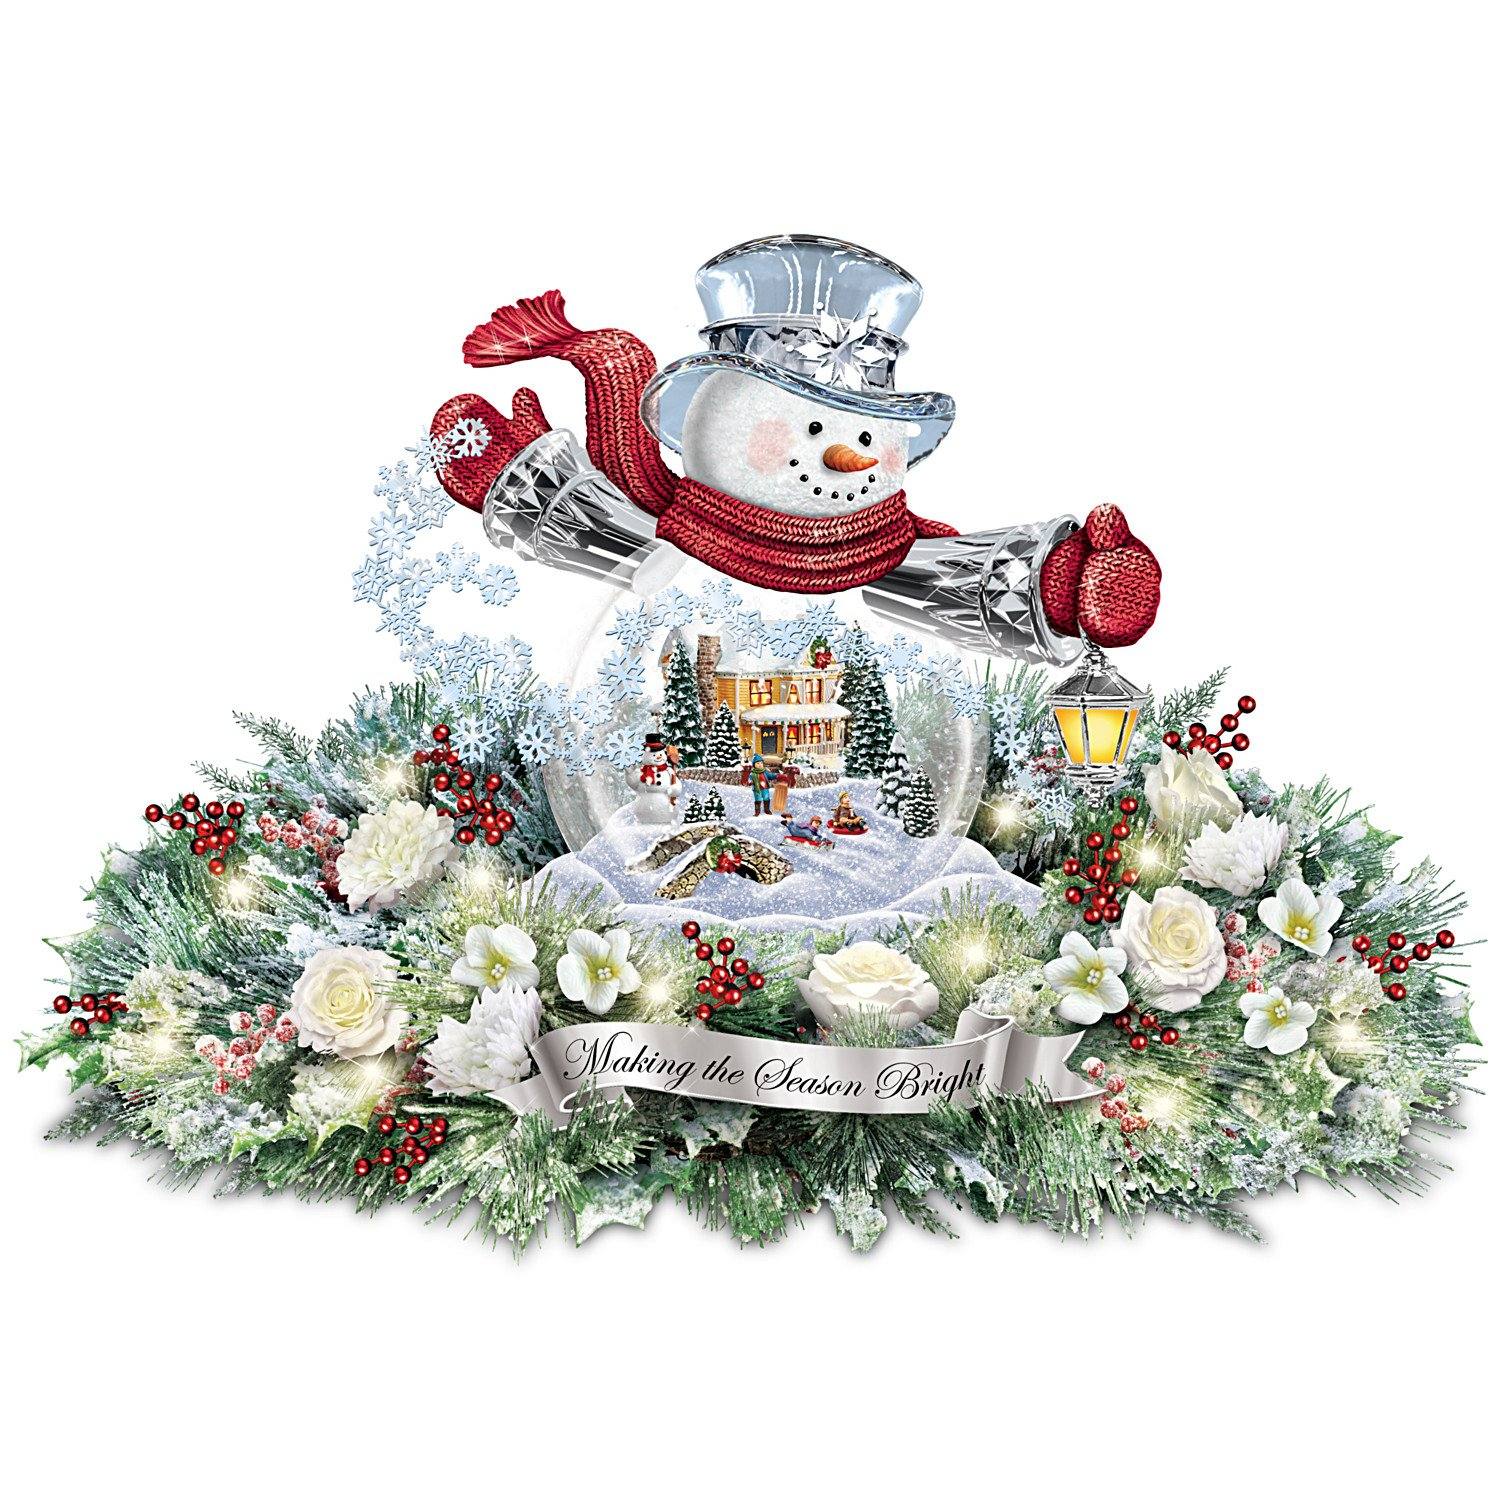 Thomas Kinkade Snowman Snow Globe Holiday Home Floral Centerpiece: Lights Up by The Bradford Exchange by Bradford Exchange